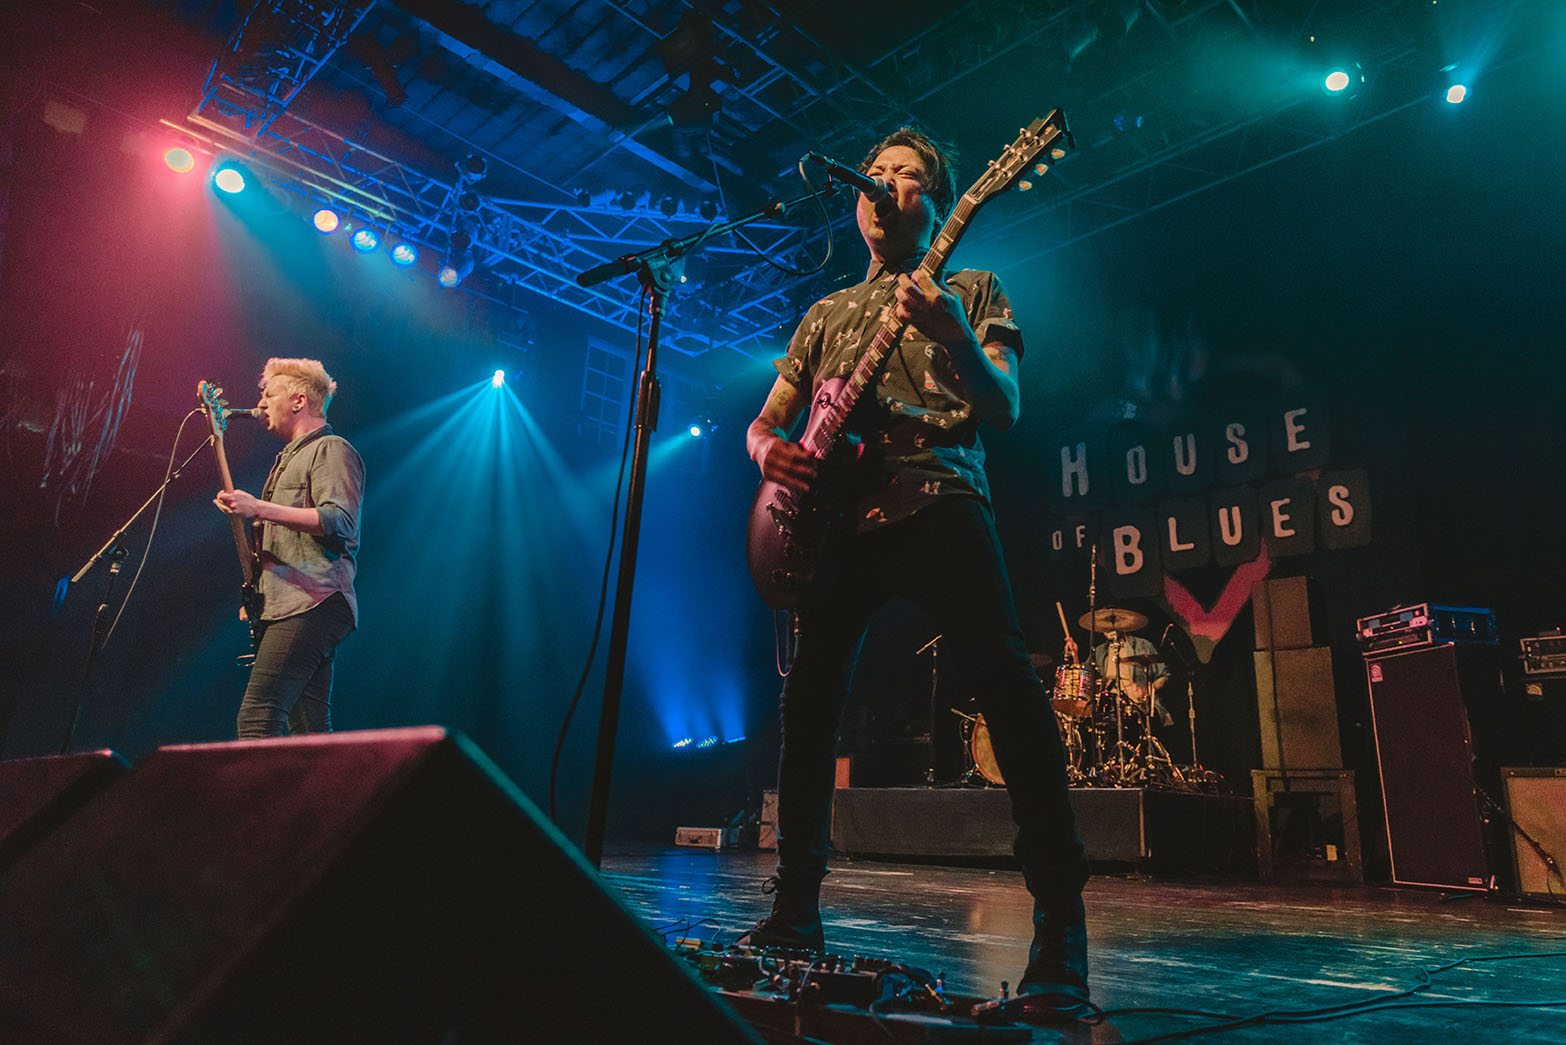 luvlost house of blues promo band concert rock photo photography image